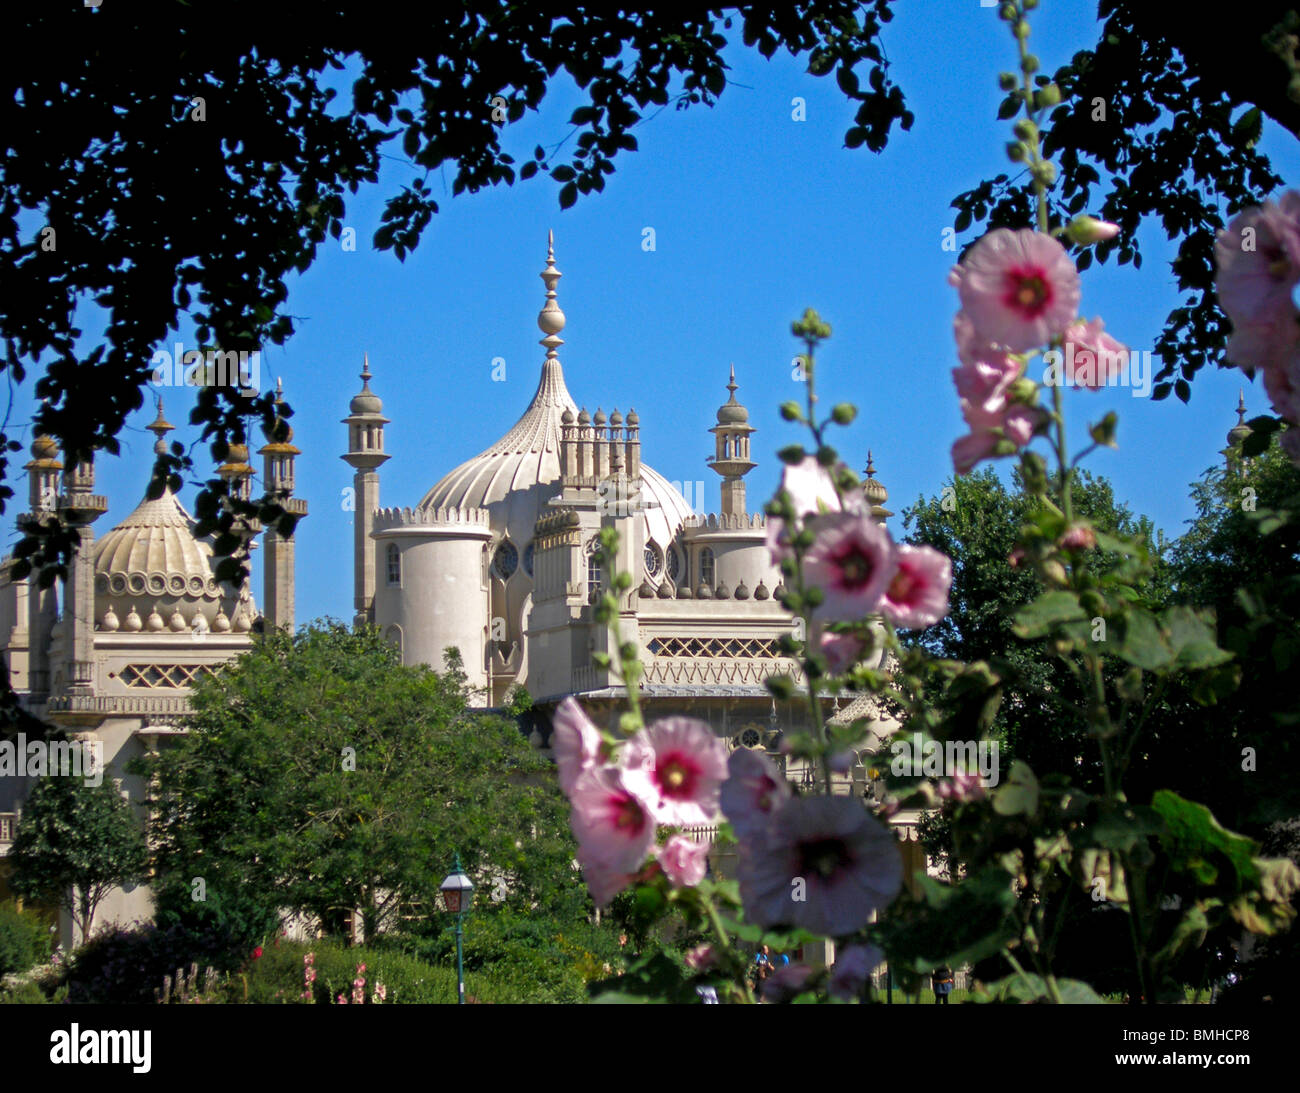 The Royal Pavilion viewed from the Pavilion Gardens, Brighton, East Sussex, England, UK, Great Britain - Stock Image